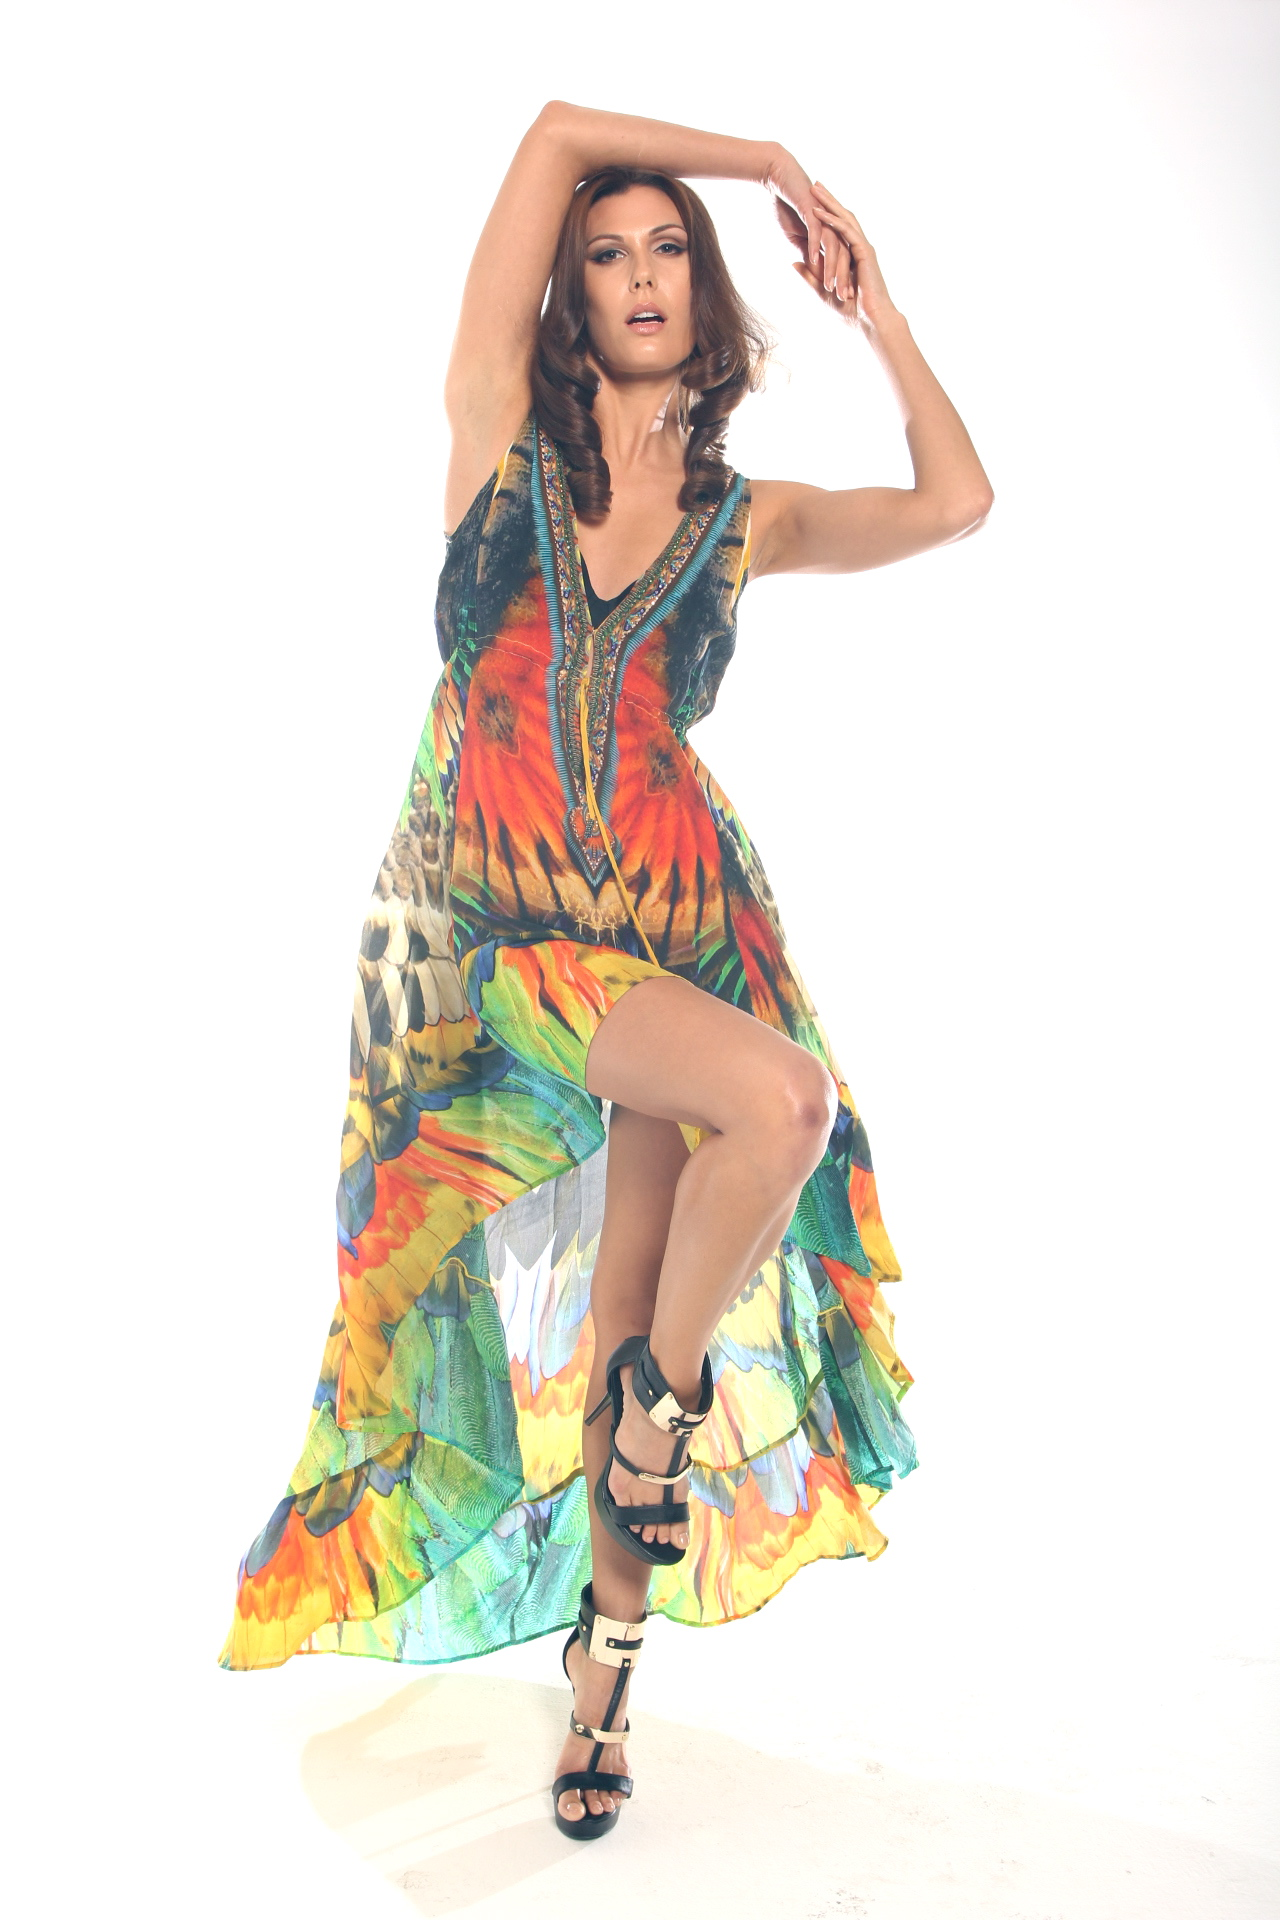 Parides official website, shahida parides hi low amazonia feather print fit and flare dress